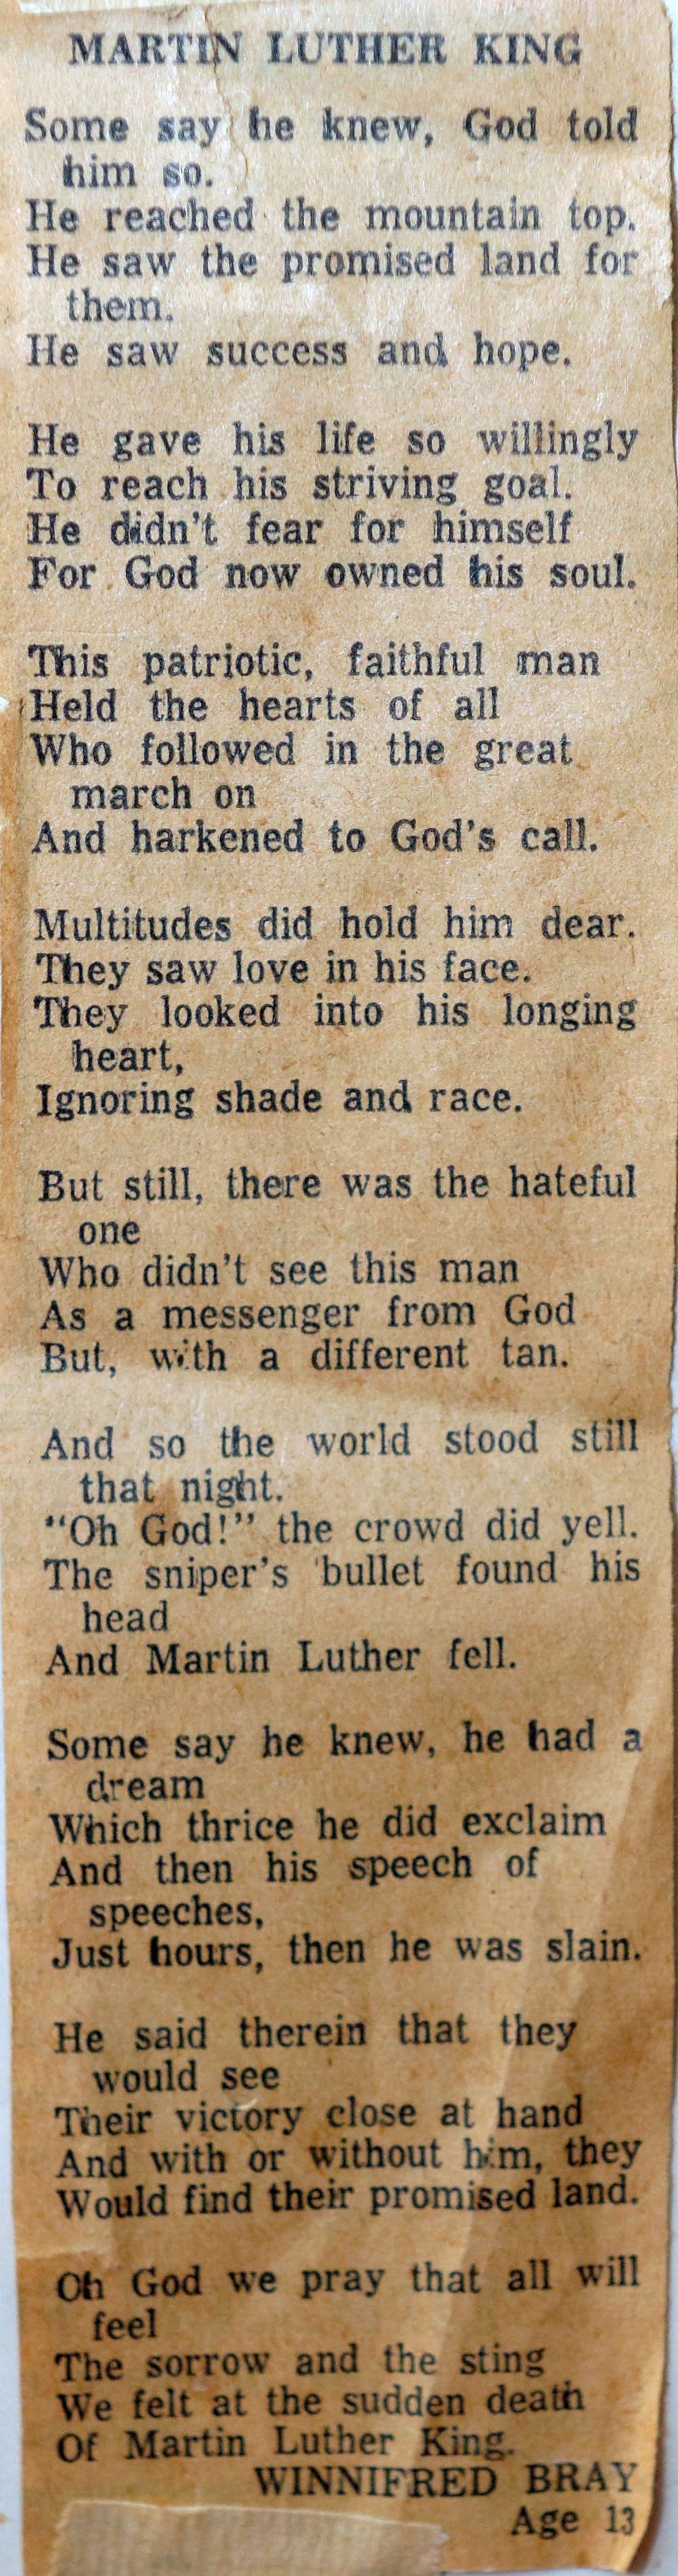 Scan of